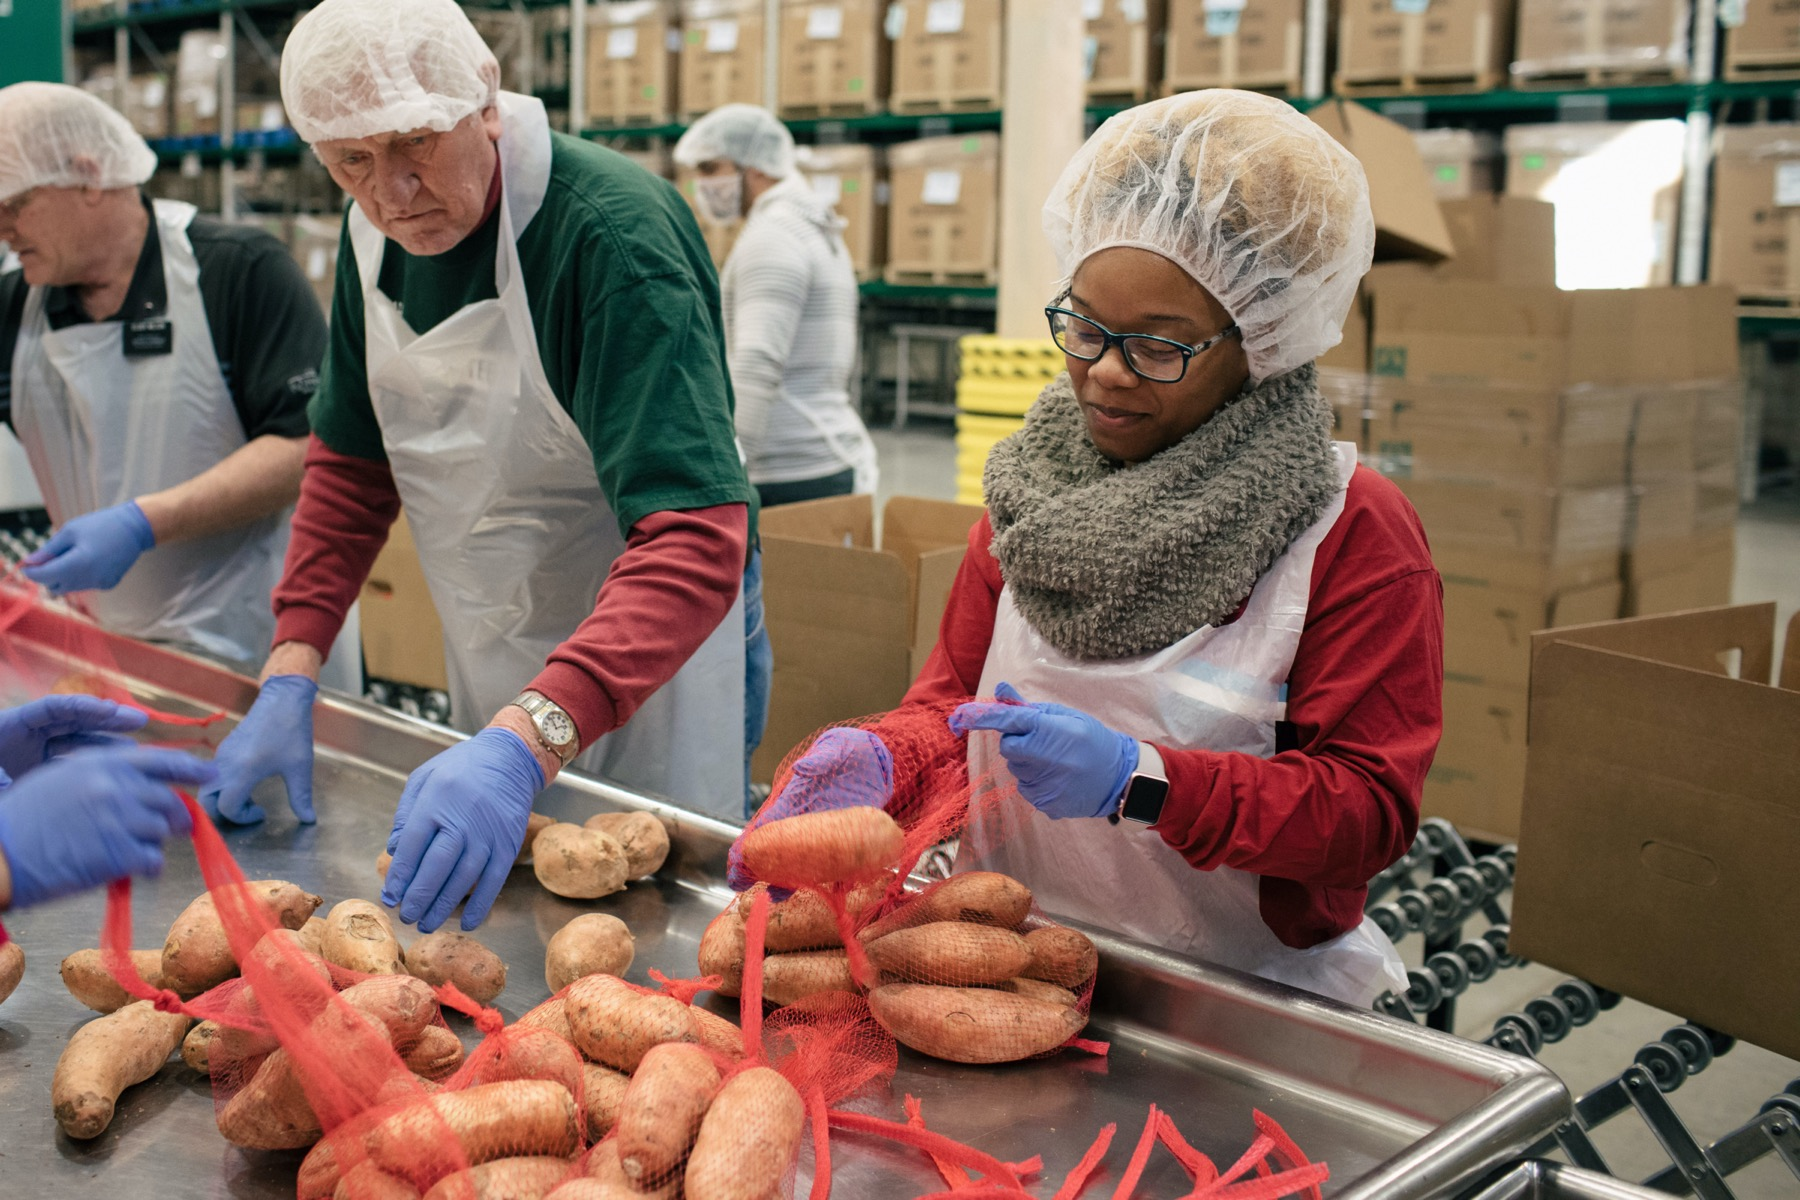 People packaging potatoes at the Greater Chicago Food Depository